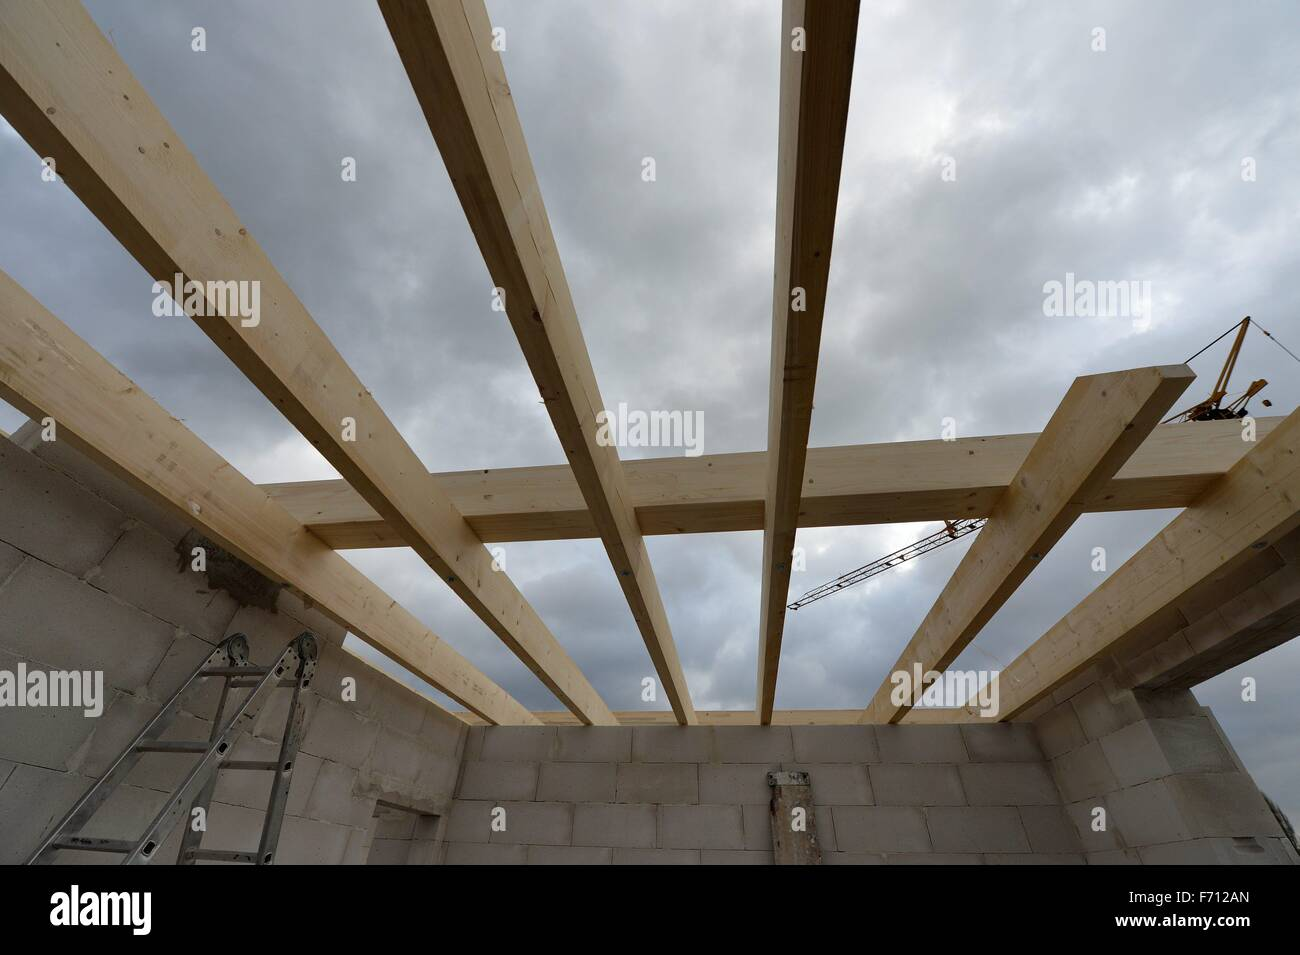 Construction area for a private house, Germany, near the city of Seesen 19. November 2015. Photo: Frank May Stock Photo